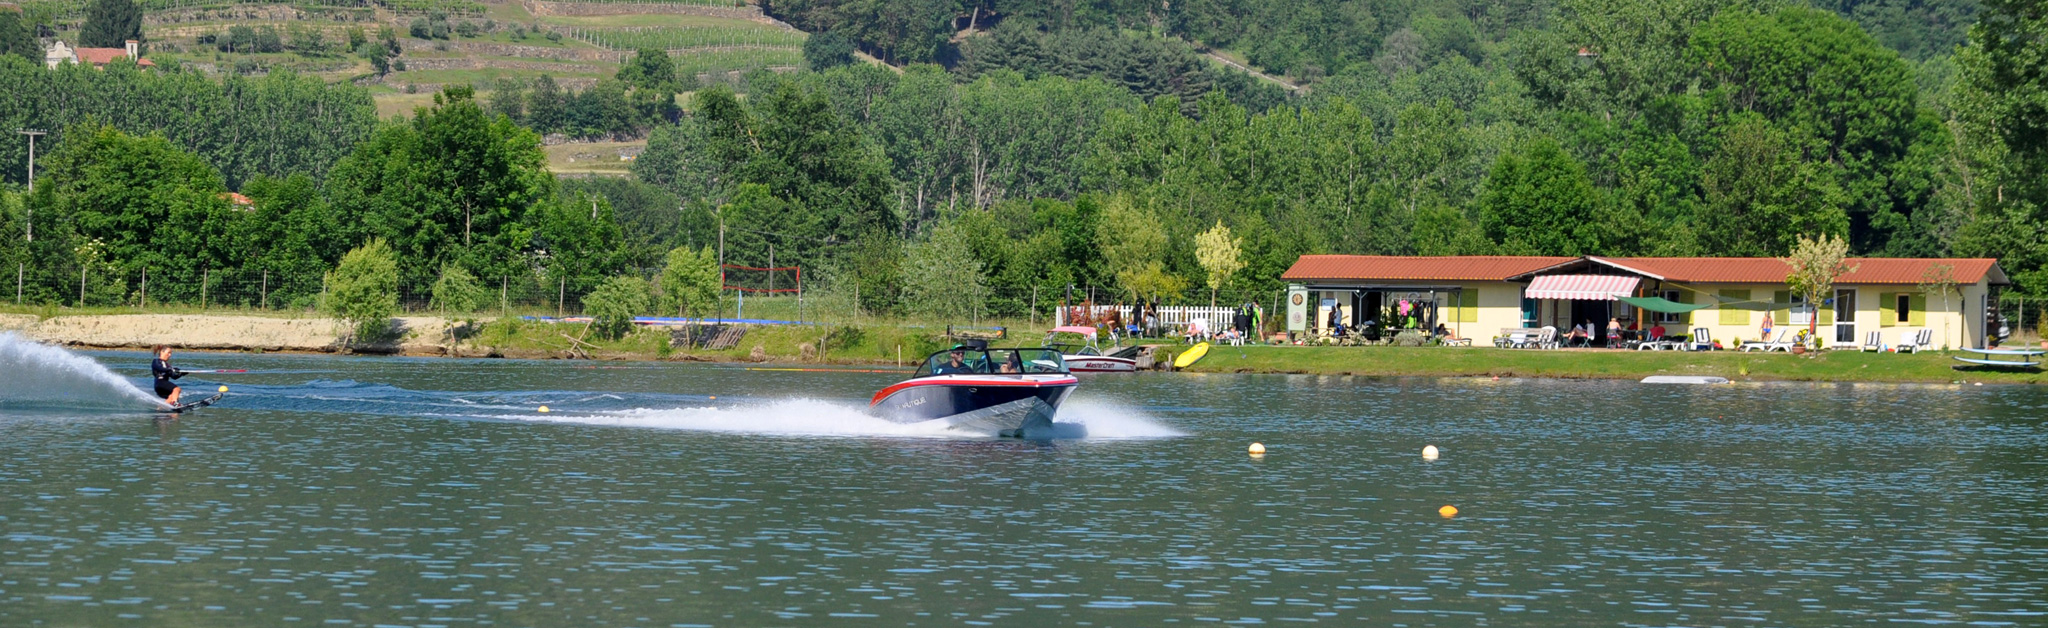 Lake-Palas-•-Water-Ski-Park1